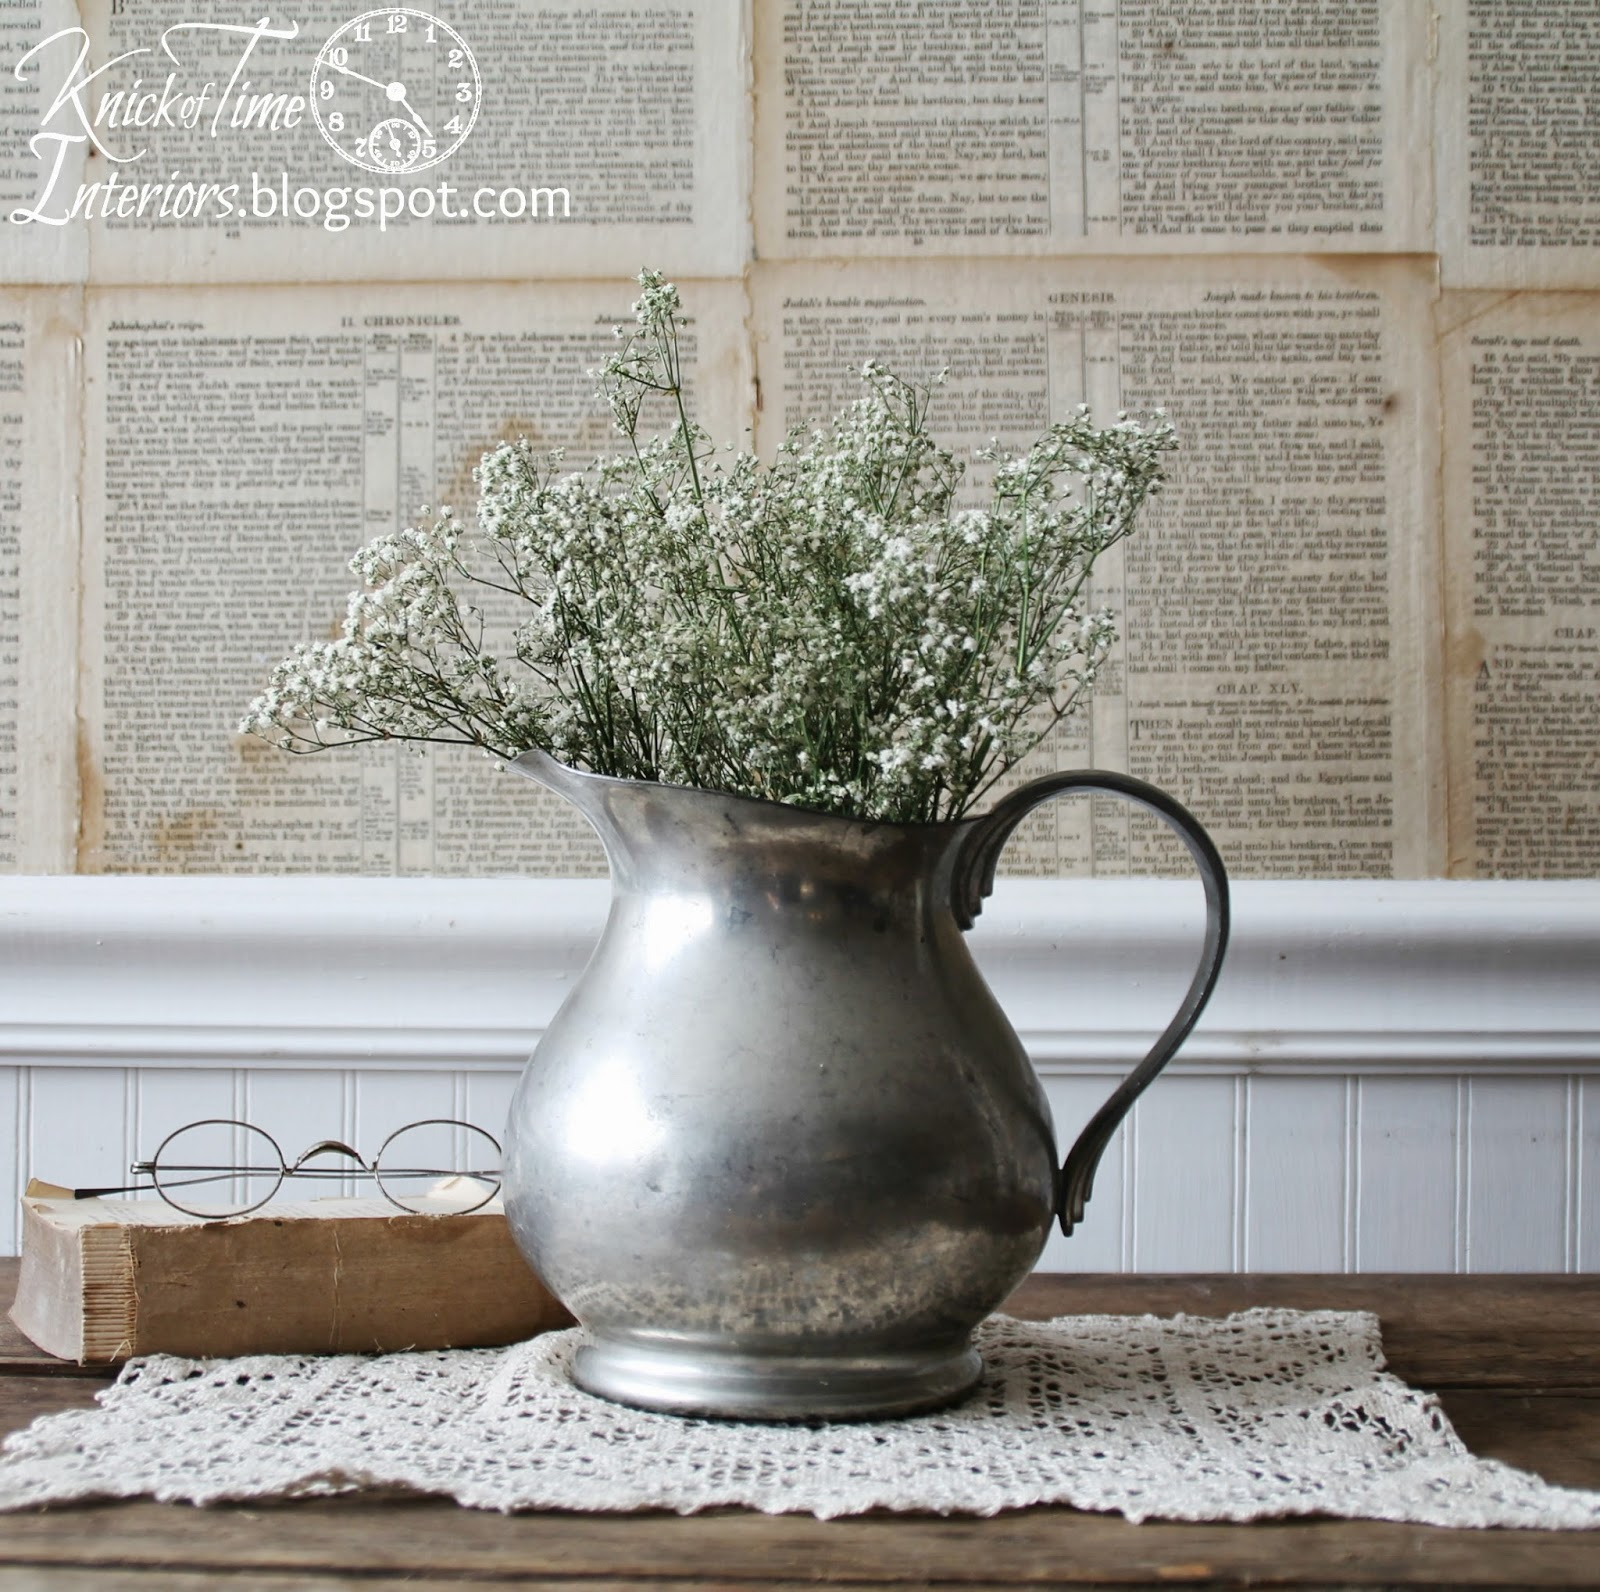 Reed and Barton Pewter Pitcher available from Knick of Time